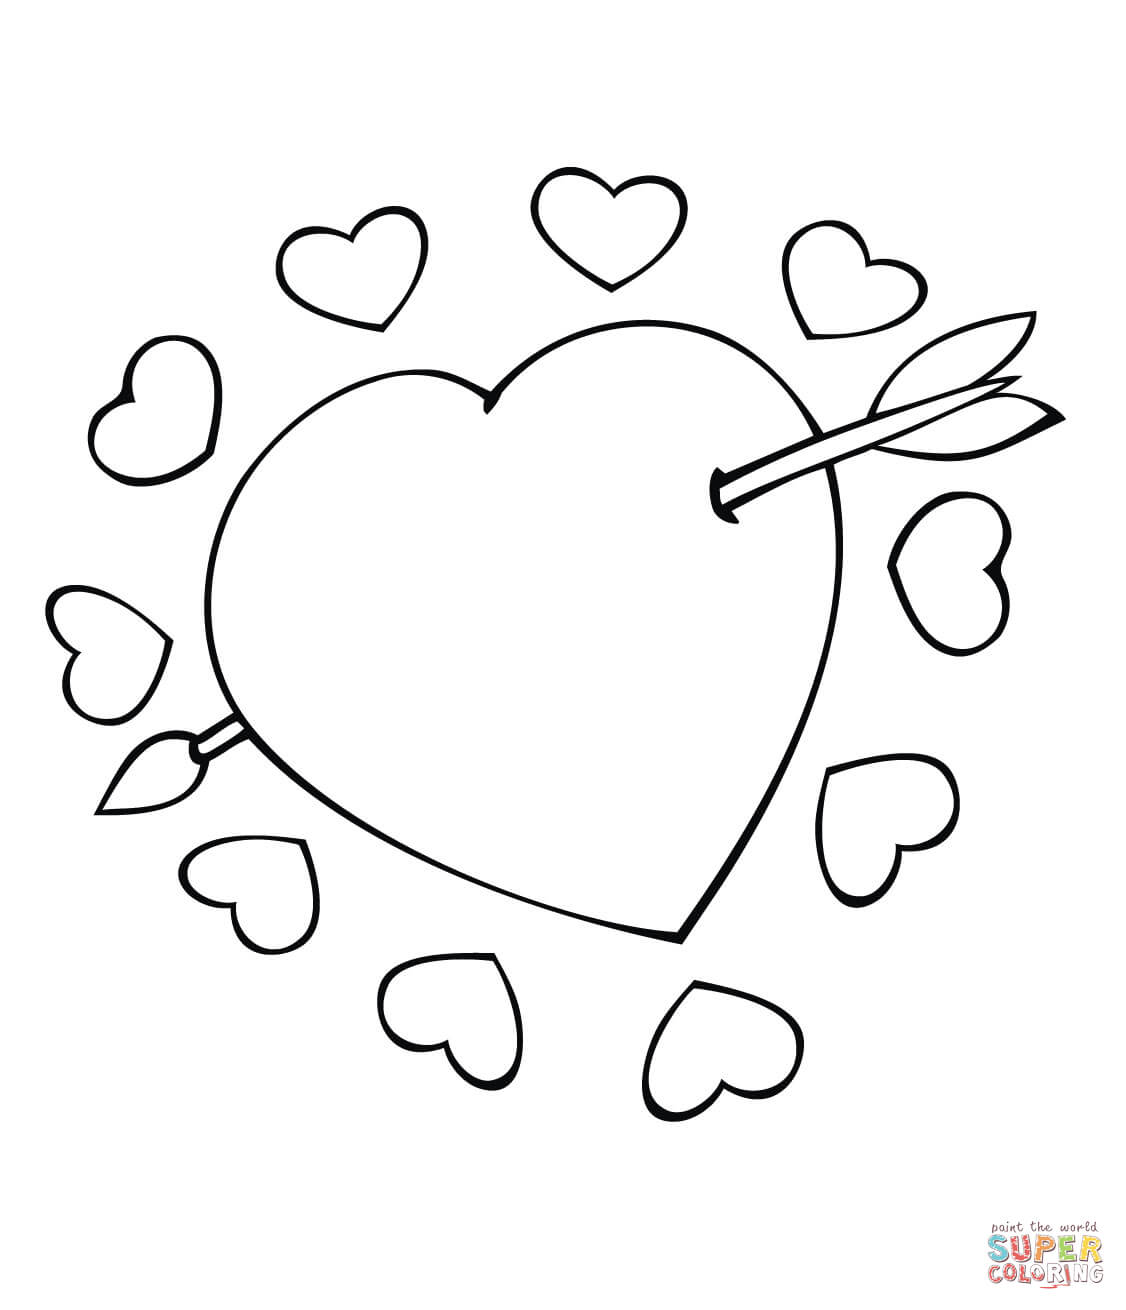 1126x1310 Cupid Arrow Through The Heart Coloring Page Free Printable